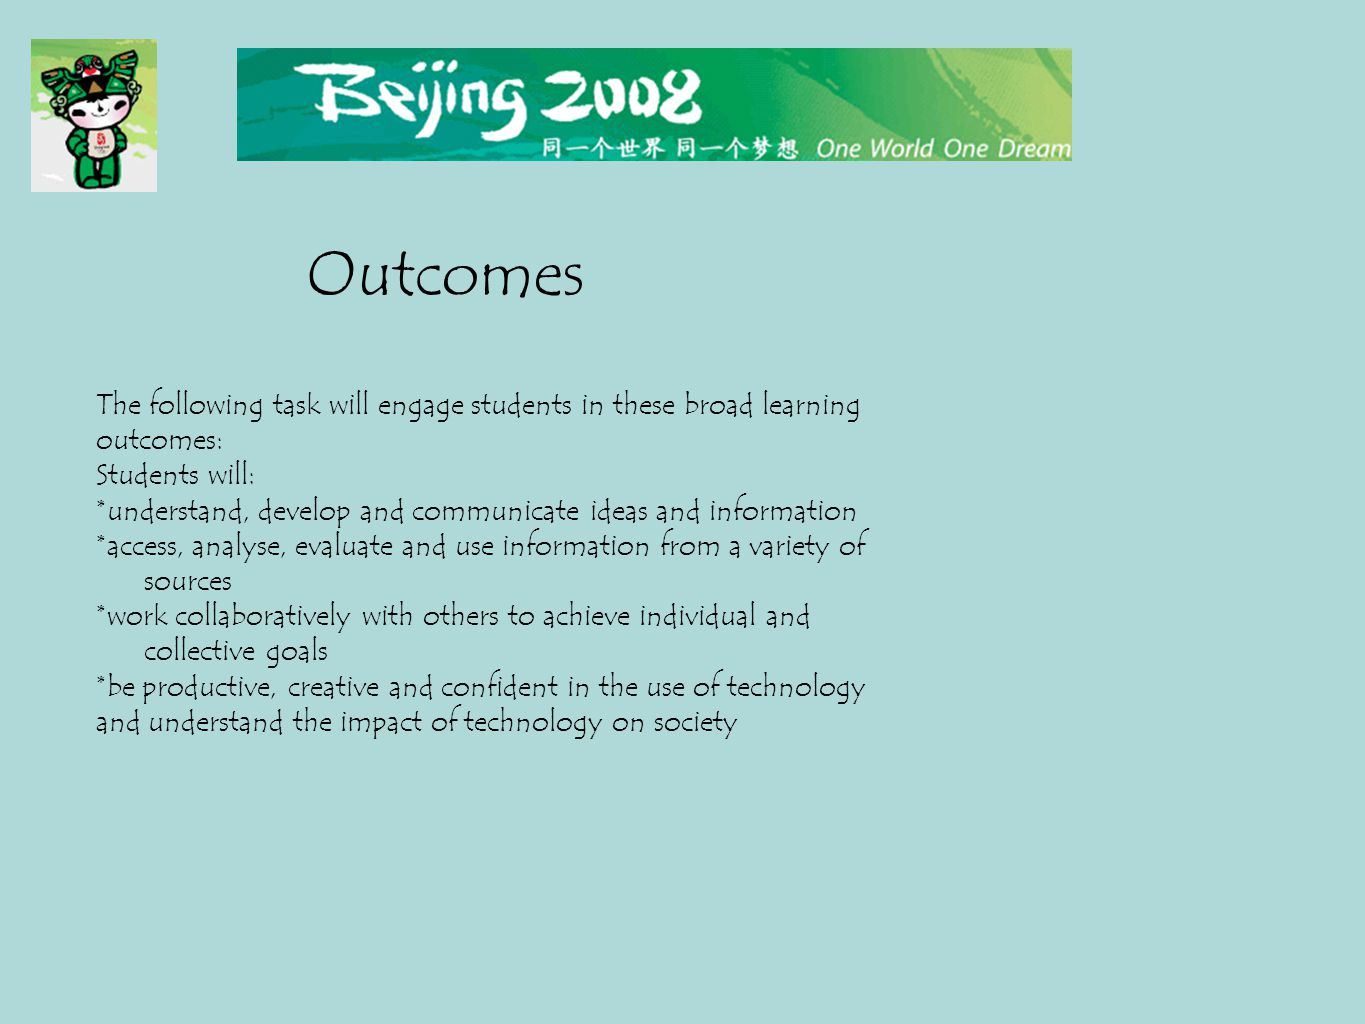 The following task will engage students in these broad learning outcomes: Students will: * understand, develop and communicate ideas and information * access, analyse, evaluate and use information from a variety of sources * work collaboratively with others to achieve individual and collective goals * be productive, creative and confident in the use of technology and understand the impact of technology on society Outcomes